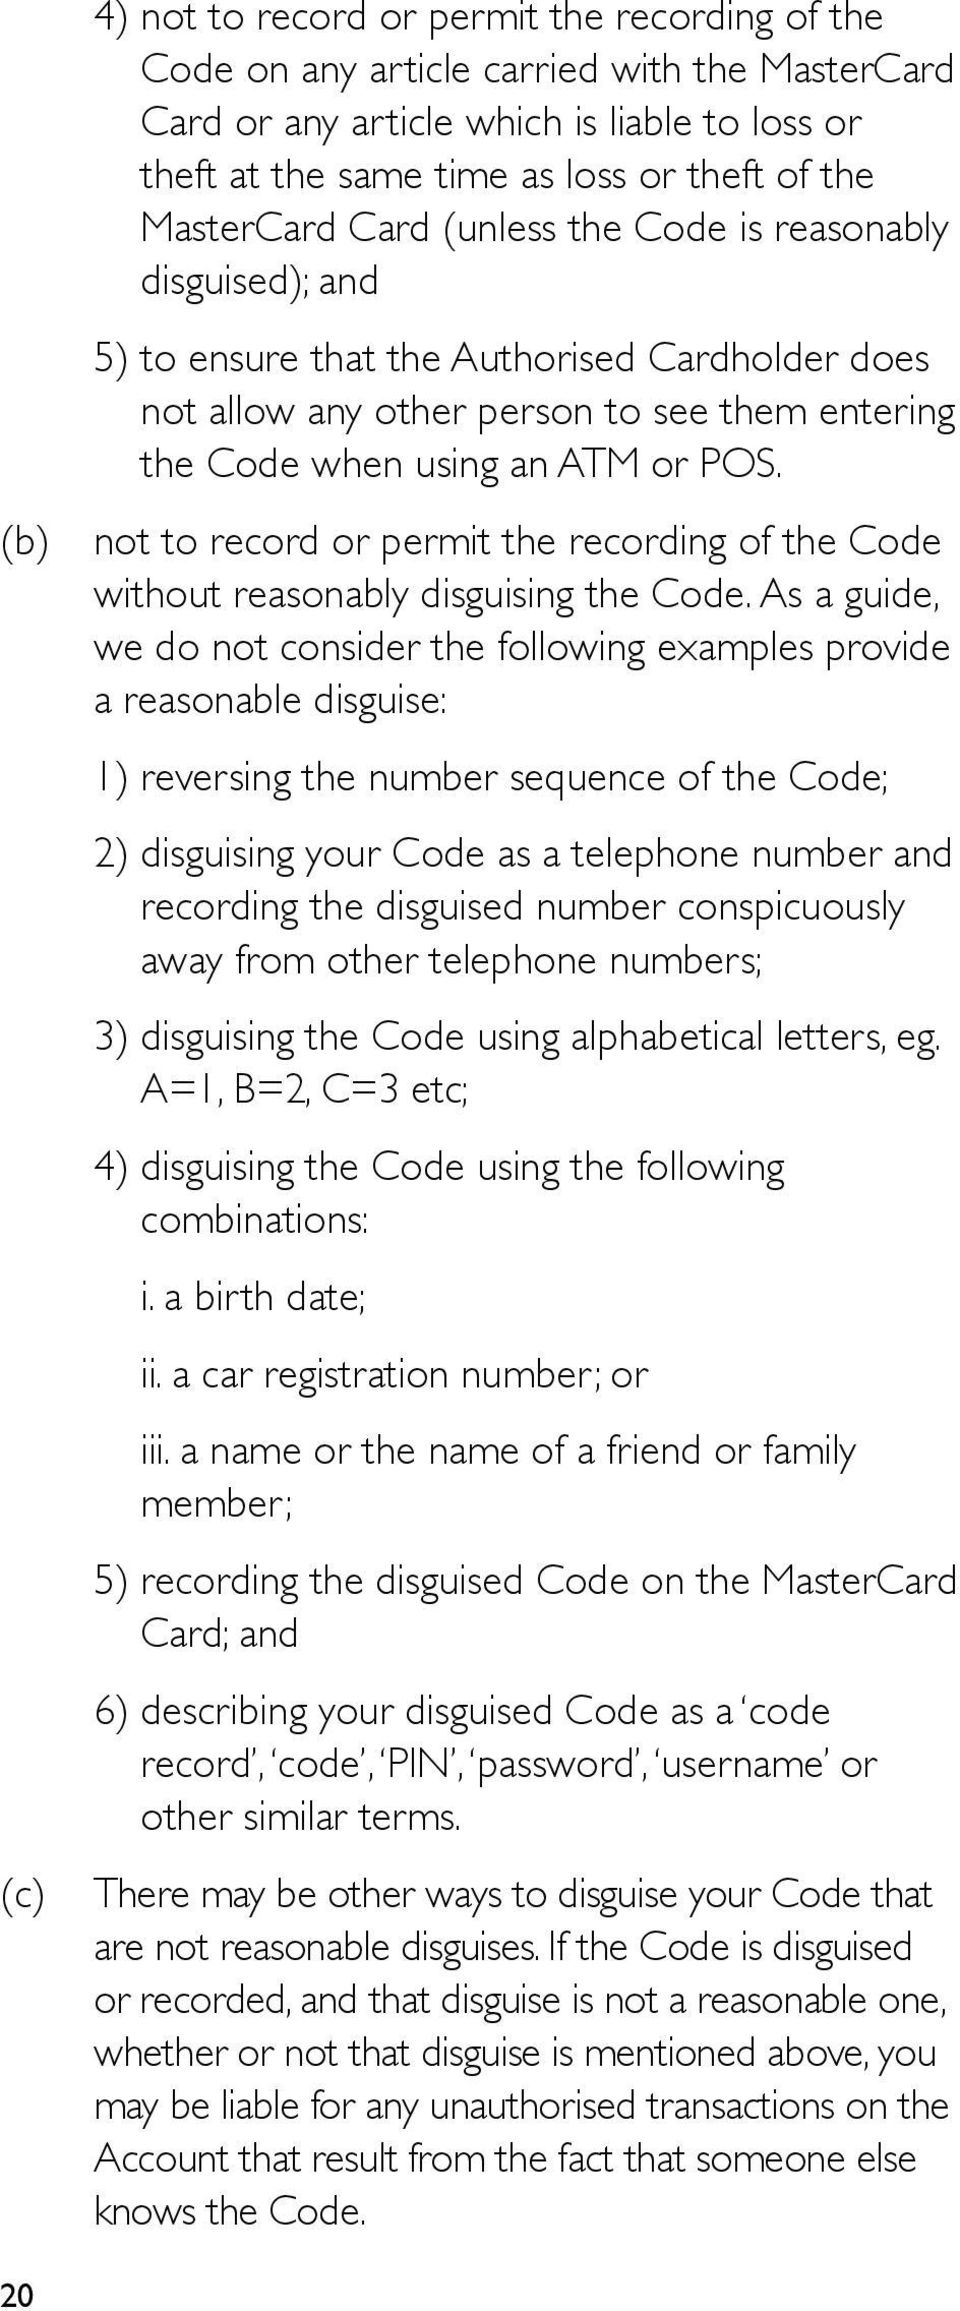 (b) not to record or permit the recording of the Code without reasonably disguising the Code.